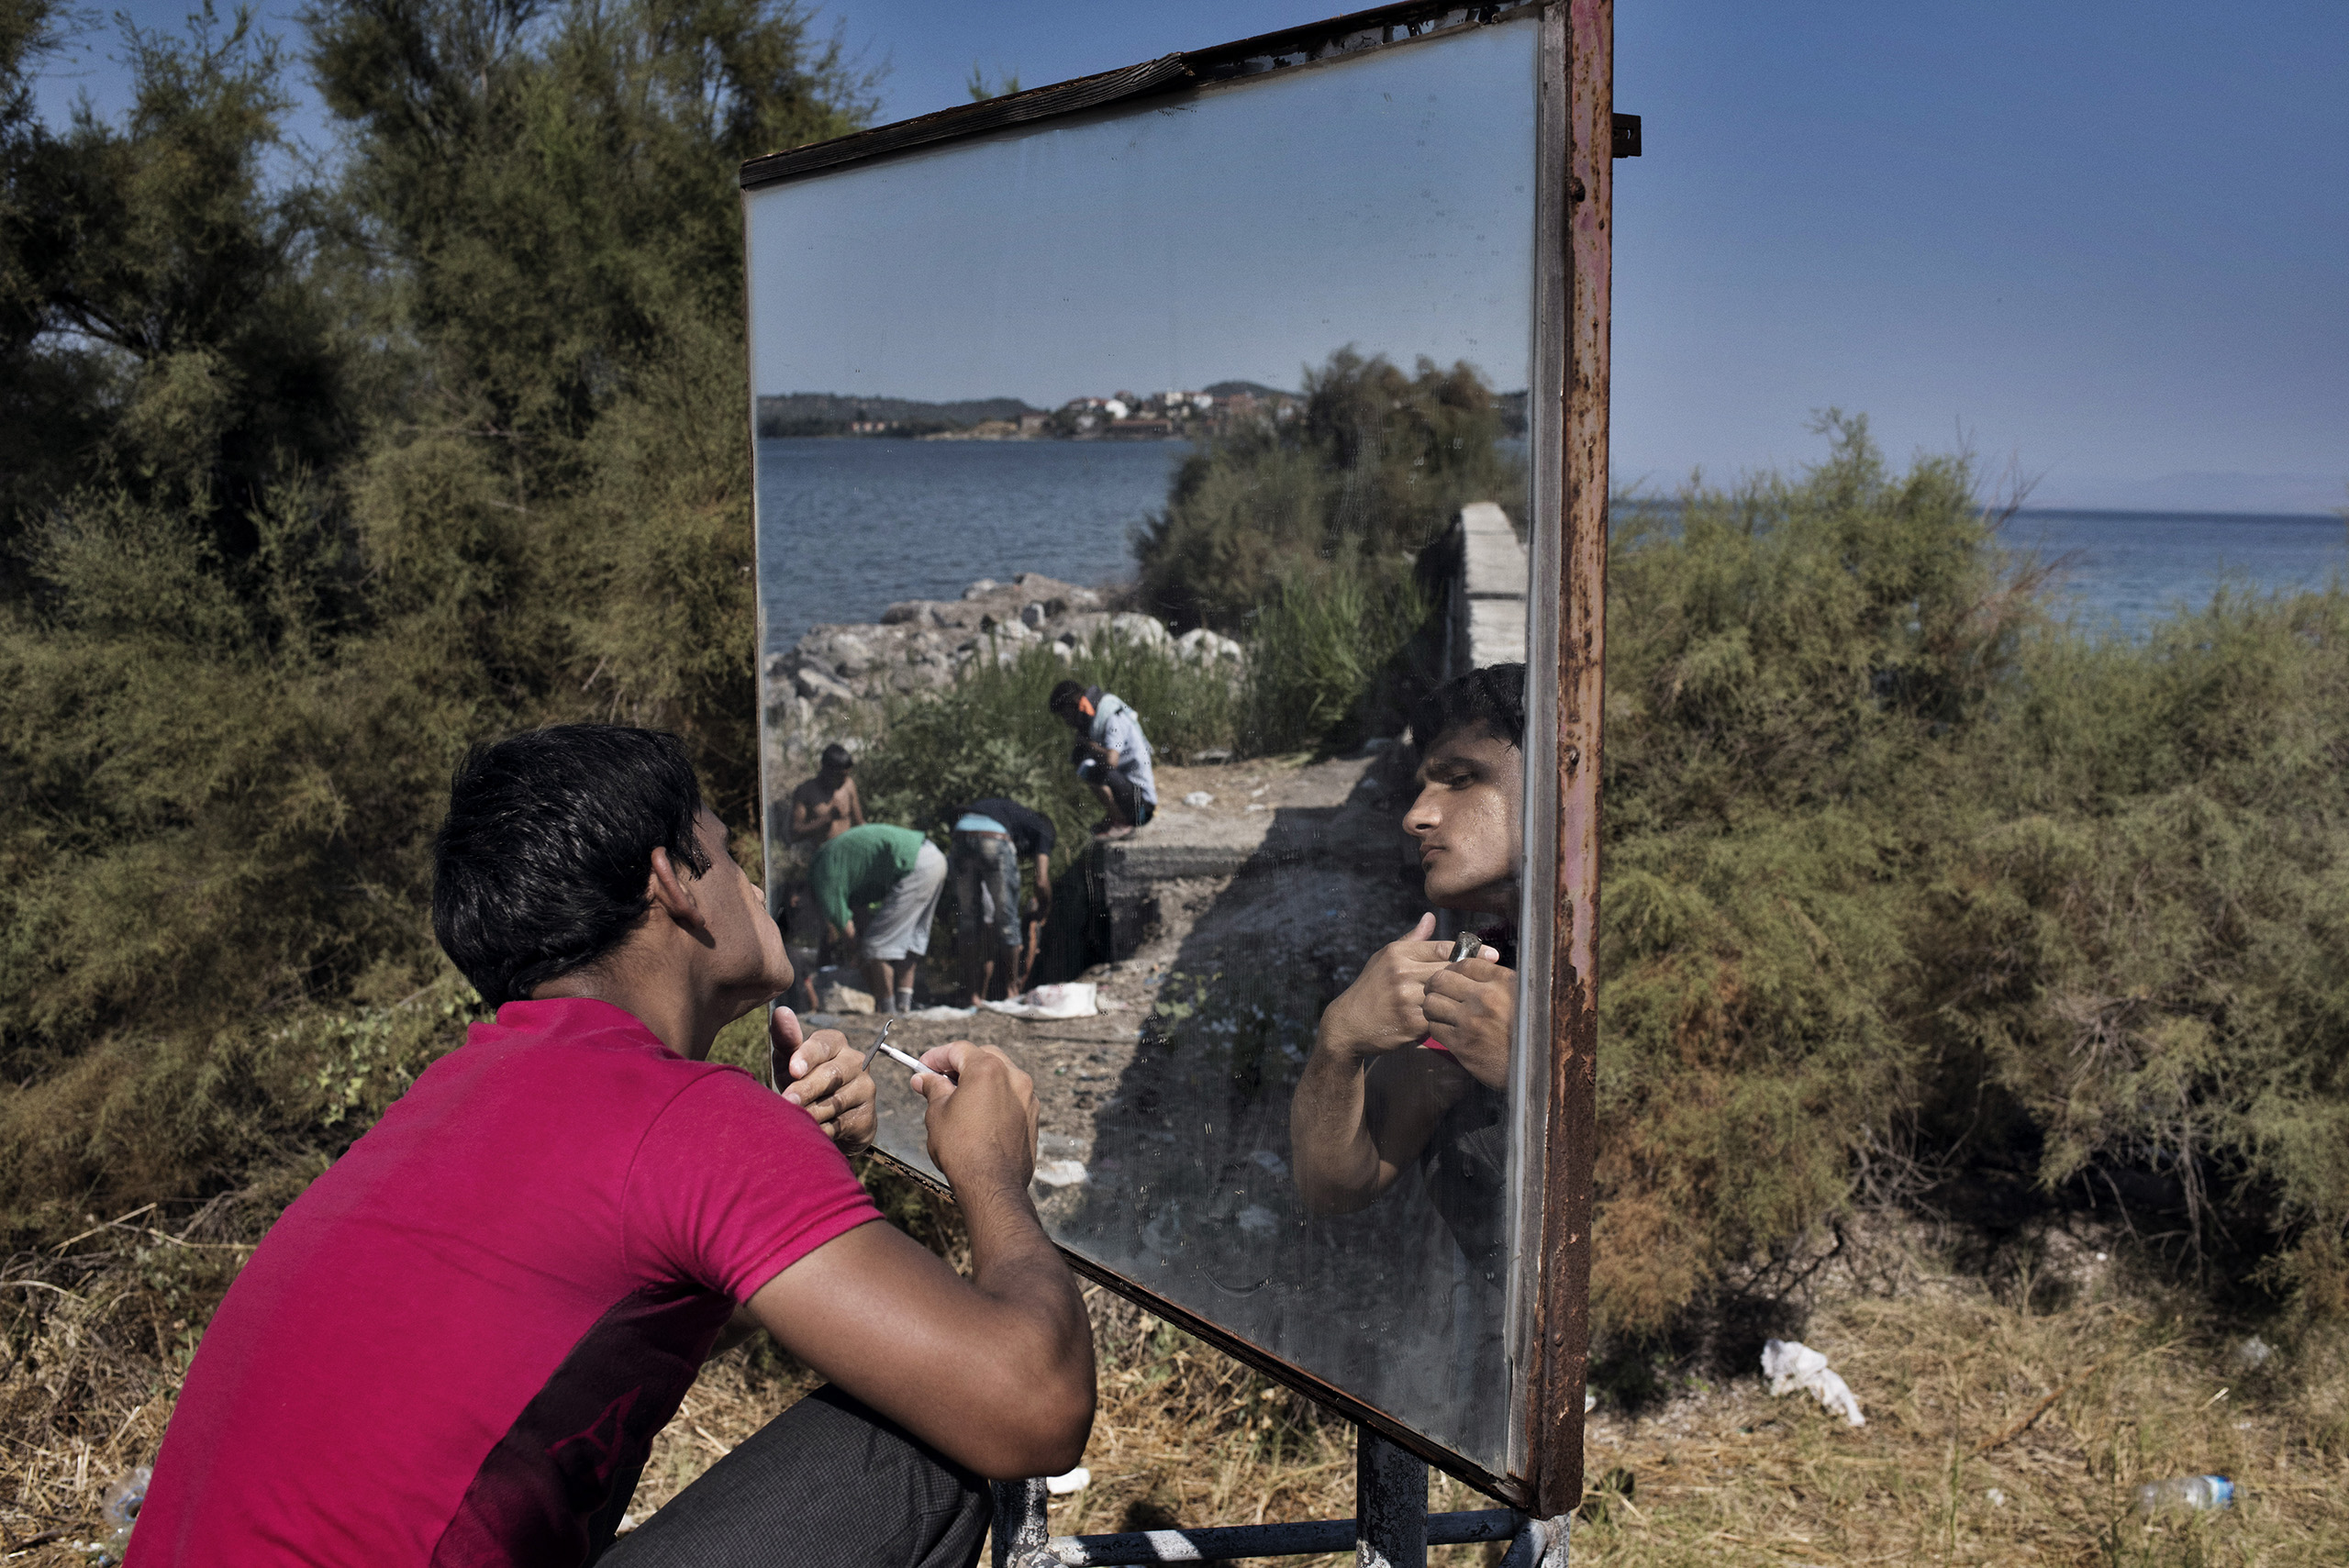 An Afghan migrant shaves with the help of a traffic mirror on the side of a highway on the Greek island of Levos.